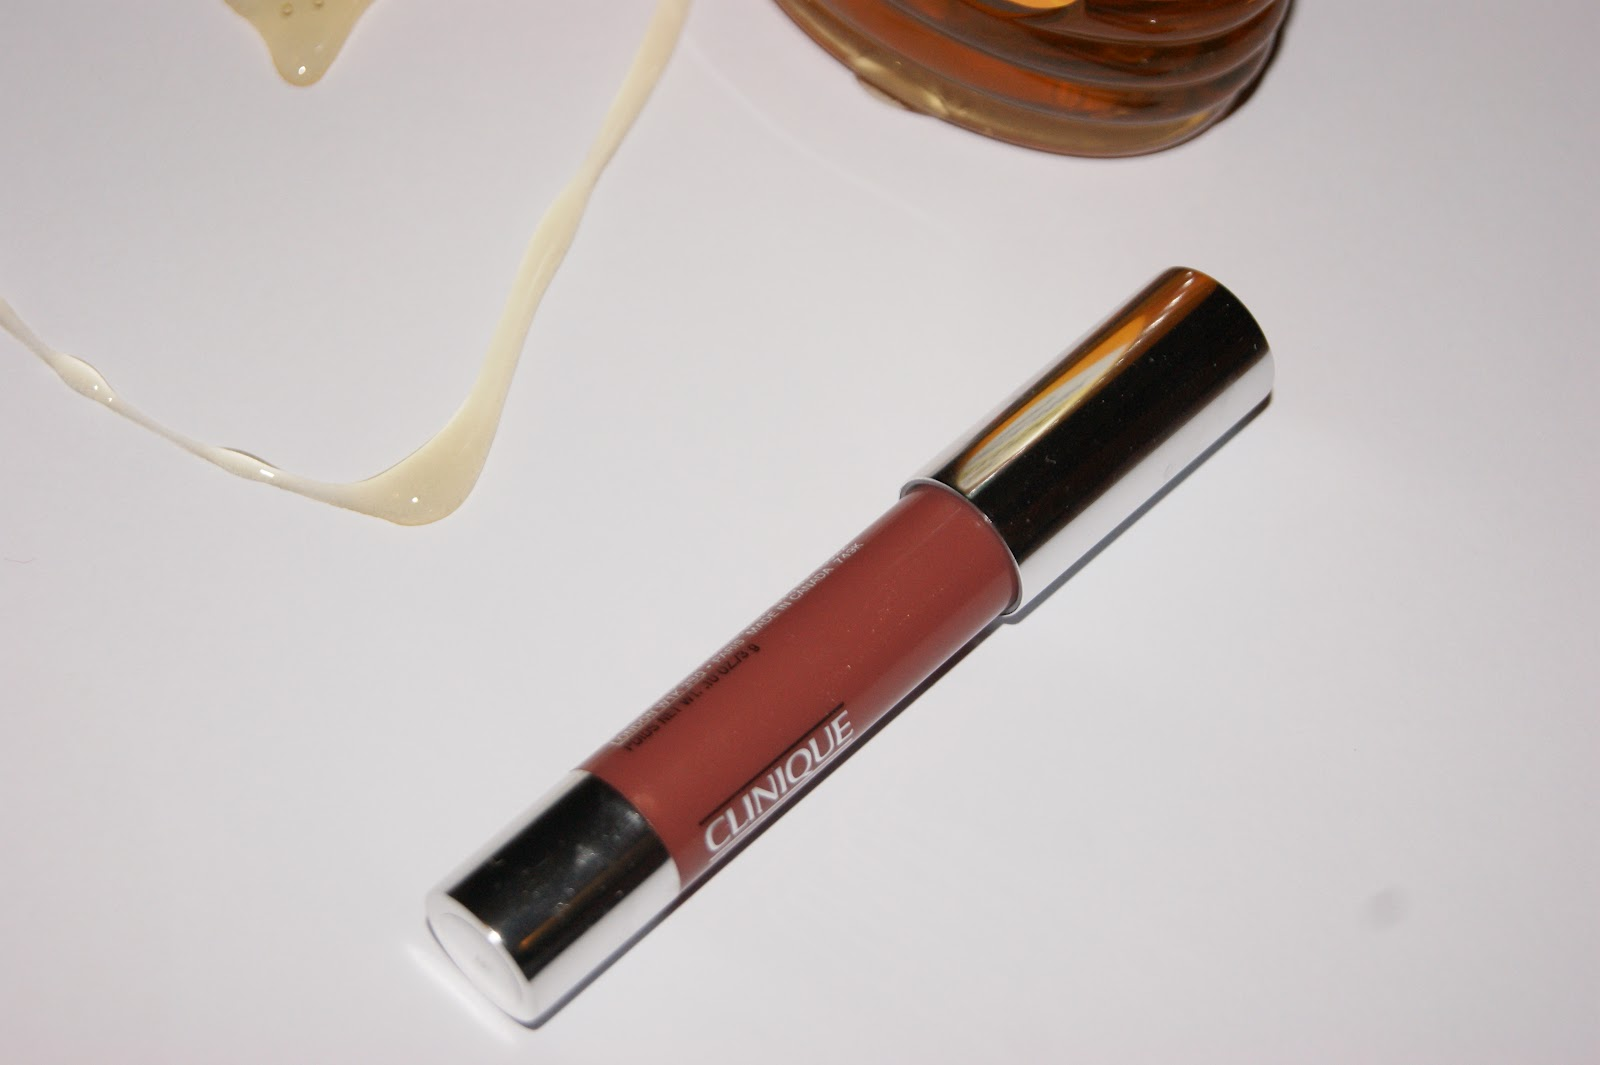 88db0b63e22 On Friday (June 1st) Clinique unveiled eight new shades of their famous  Chubby Sticks